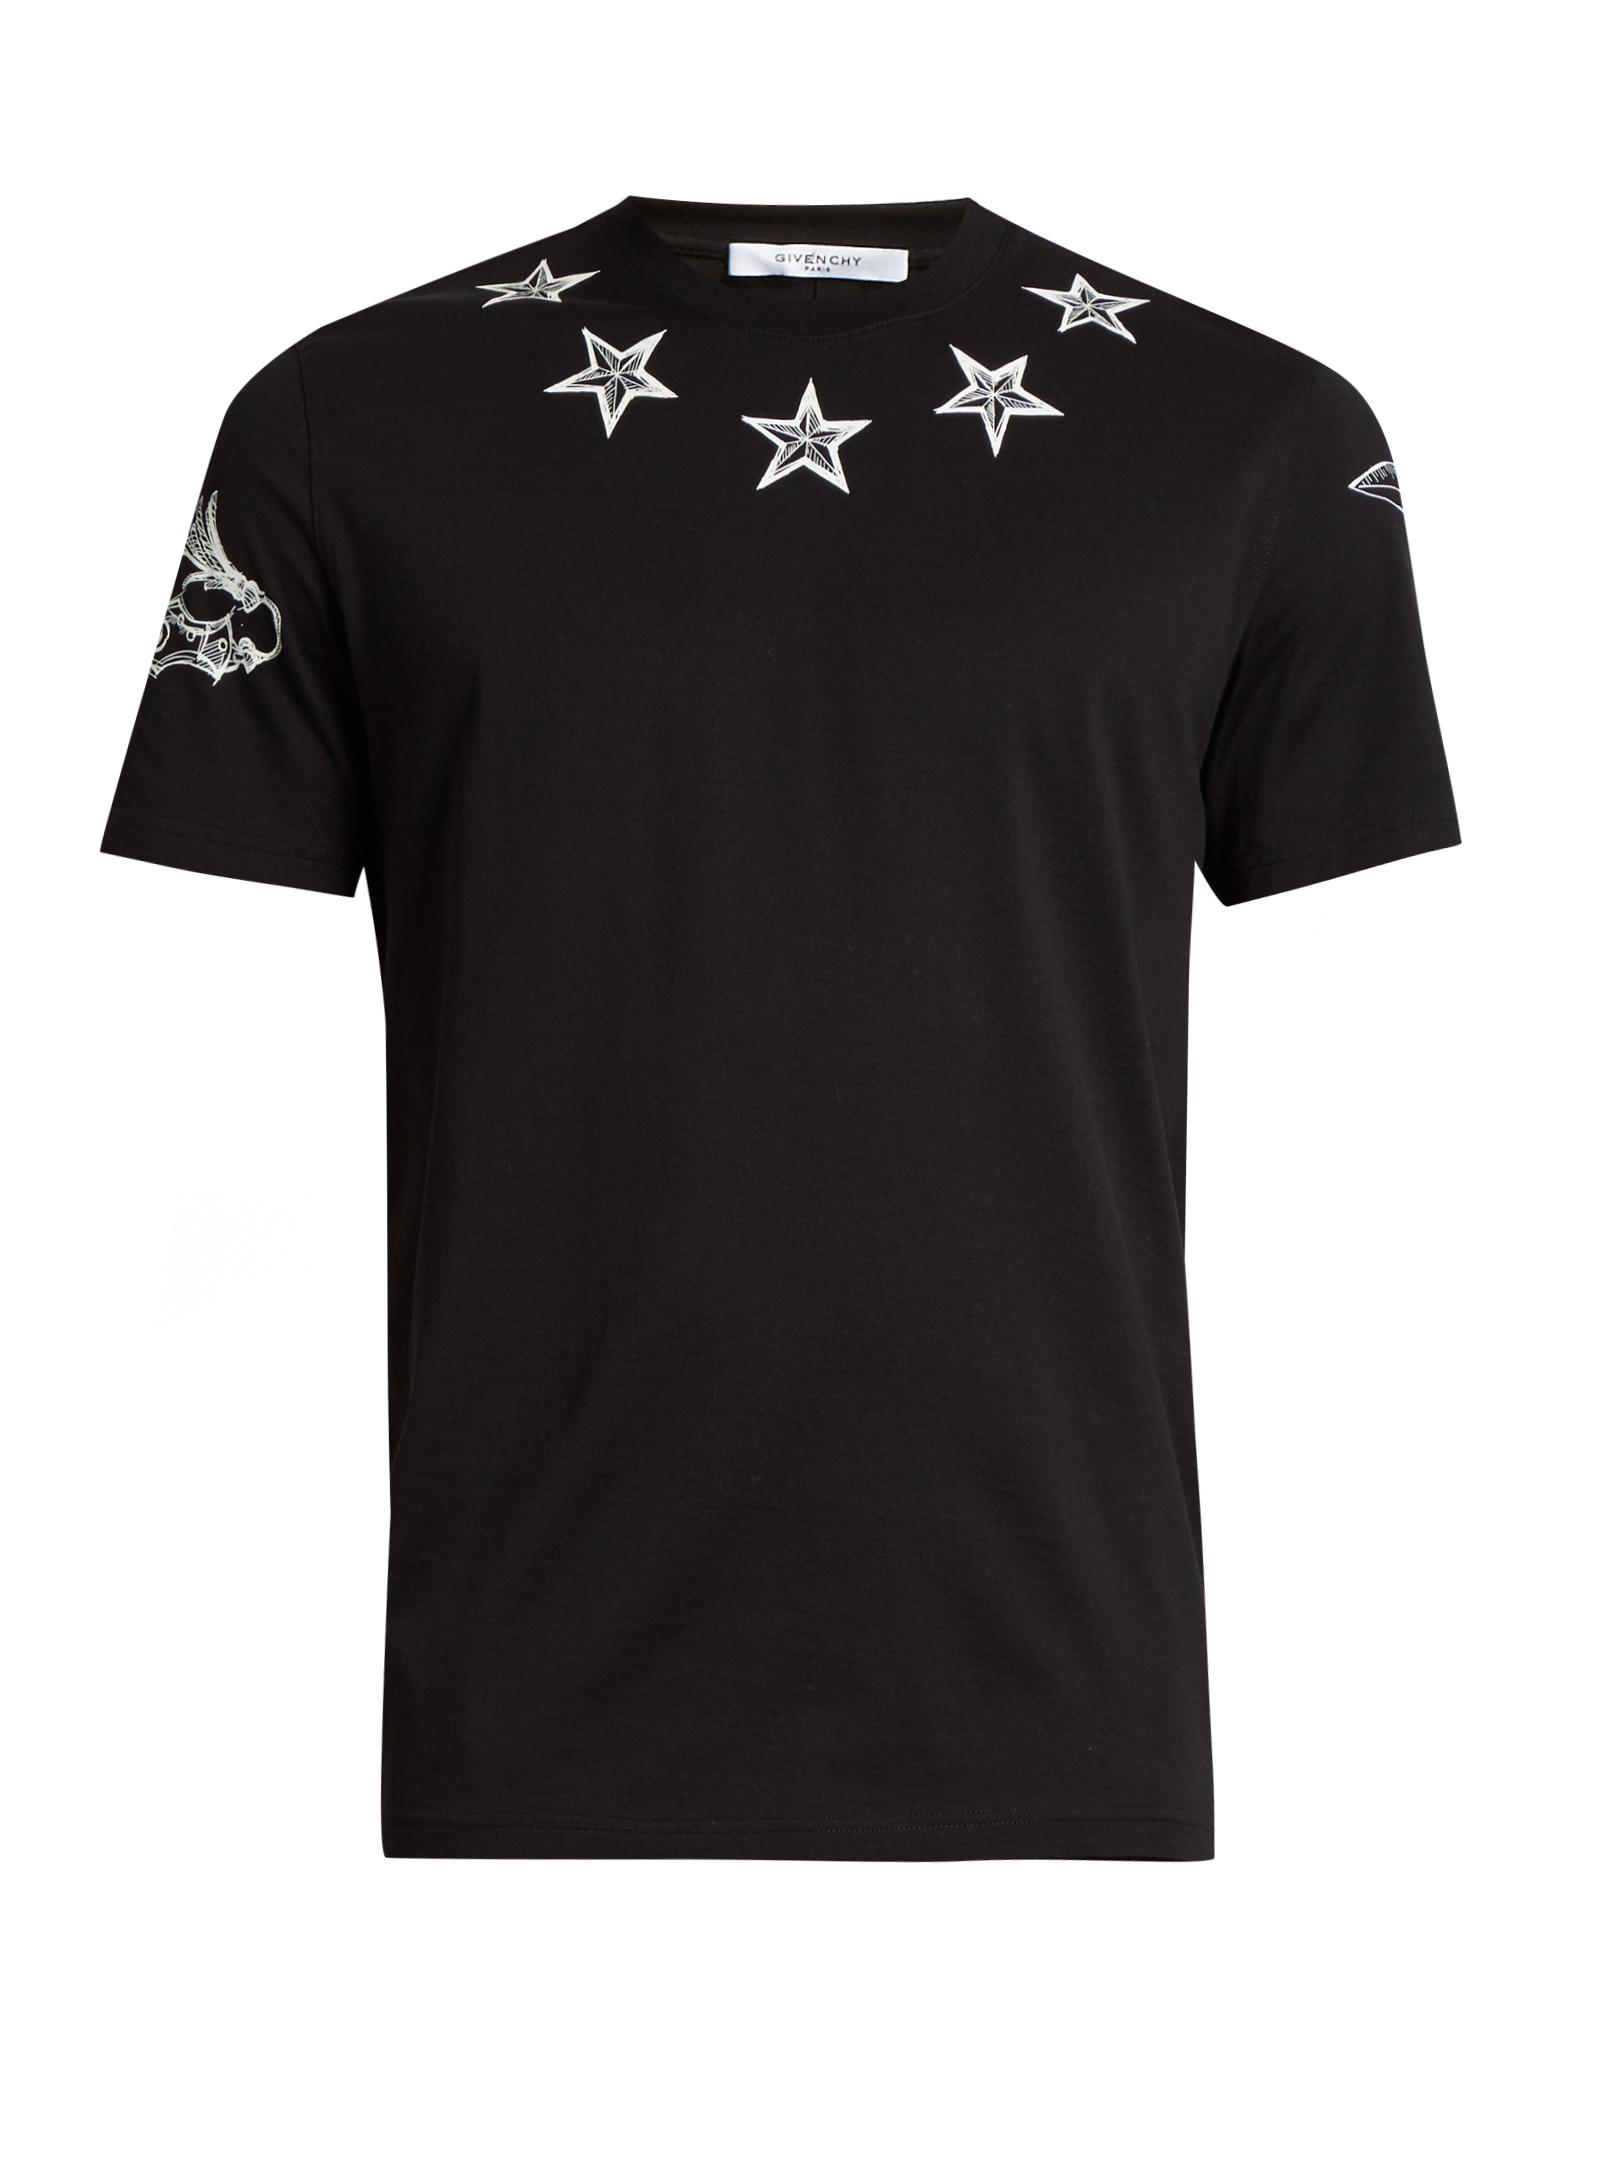 Givenchy star print cotton jersey t shirt in black for men for Givenchy 5 star shirt